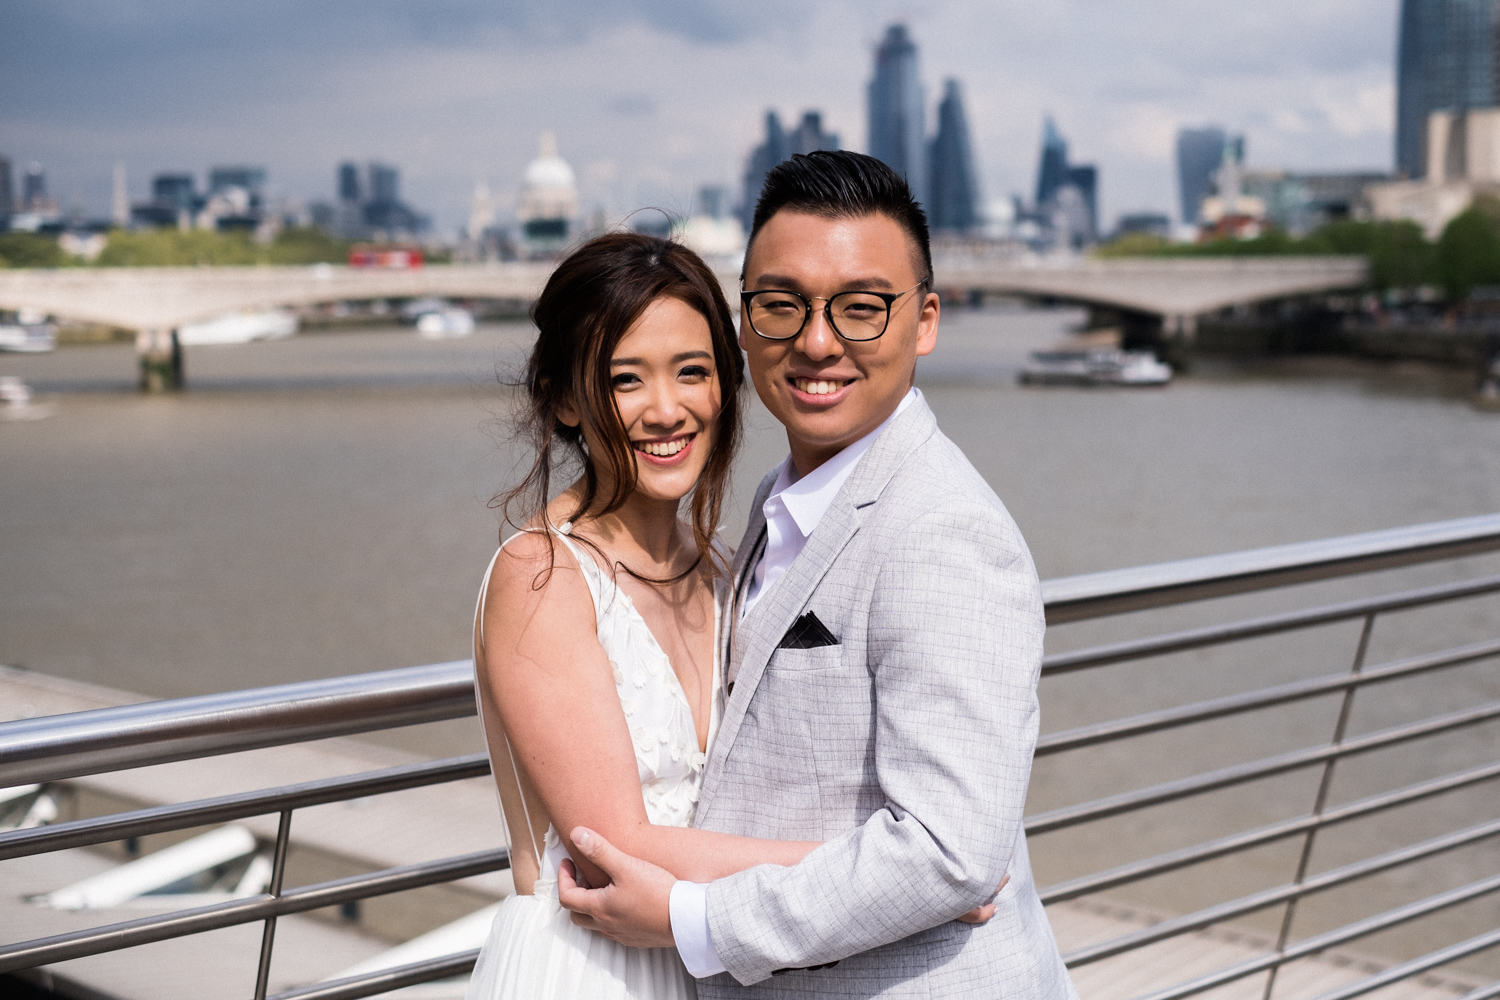 London pre-wedding photos - London skyline